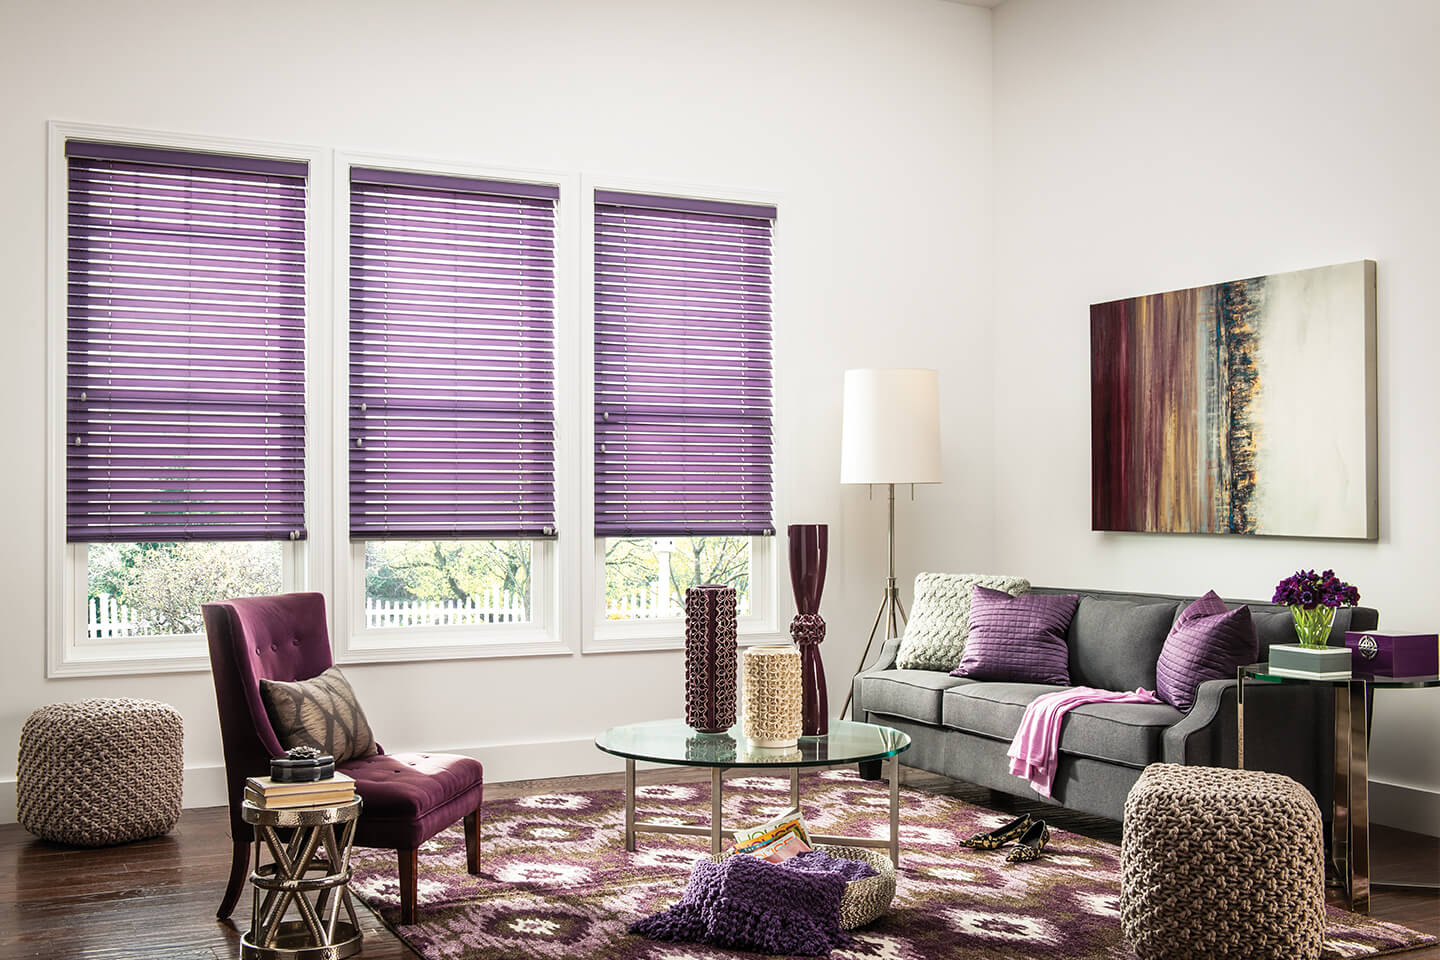 en go look products windows great a verticals any highlands room stone soft blinds for living large is and fabric fabricvertical custom vertical made offers to